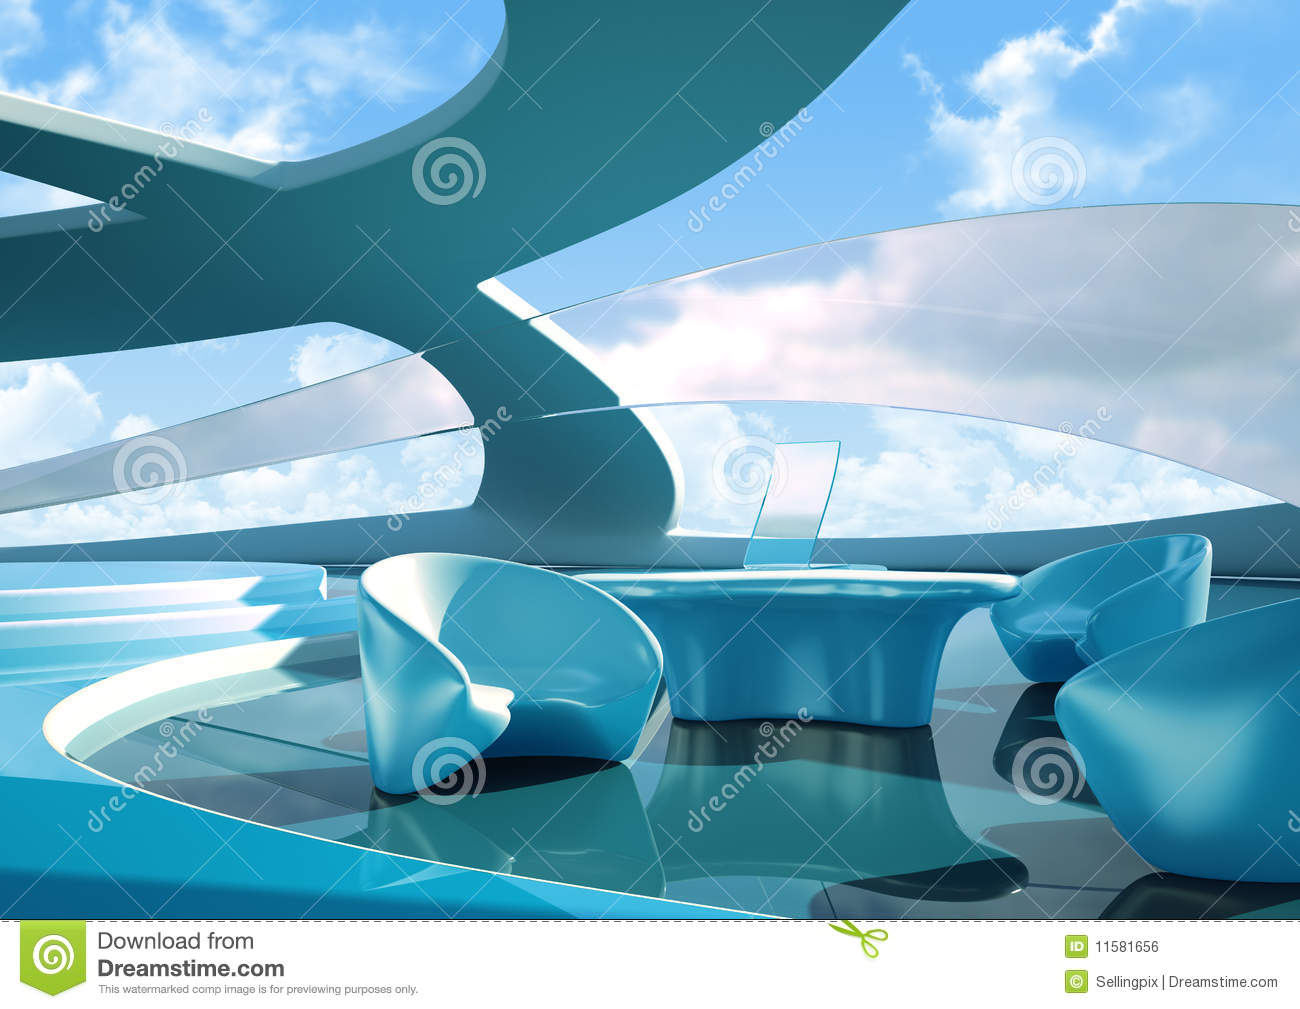 Futur int rieur image libre de droits image 11581656 for Futur interieur